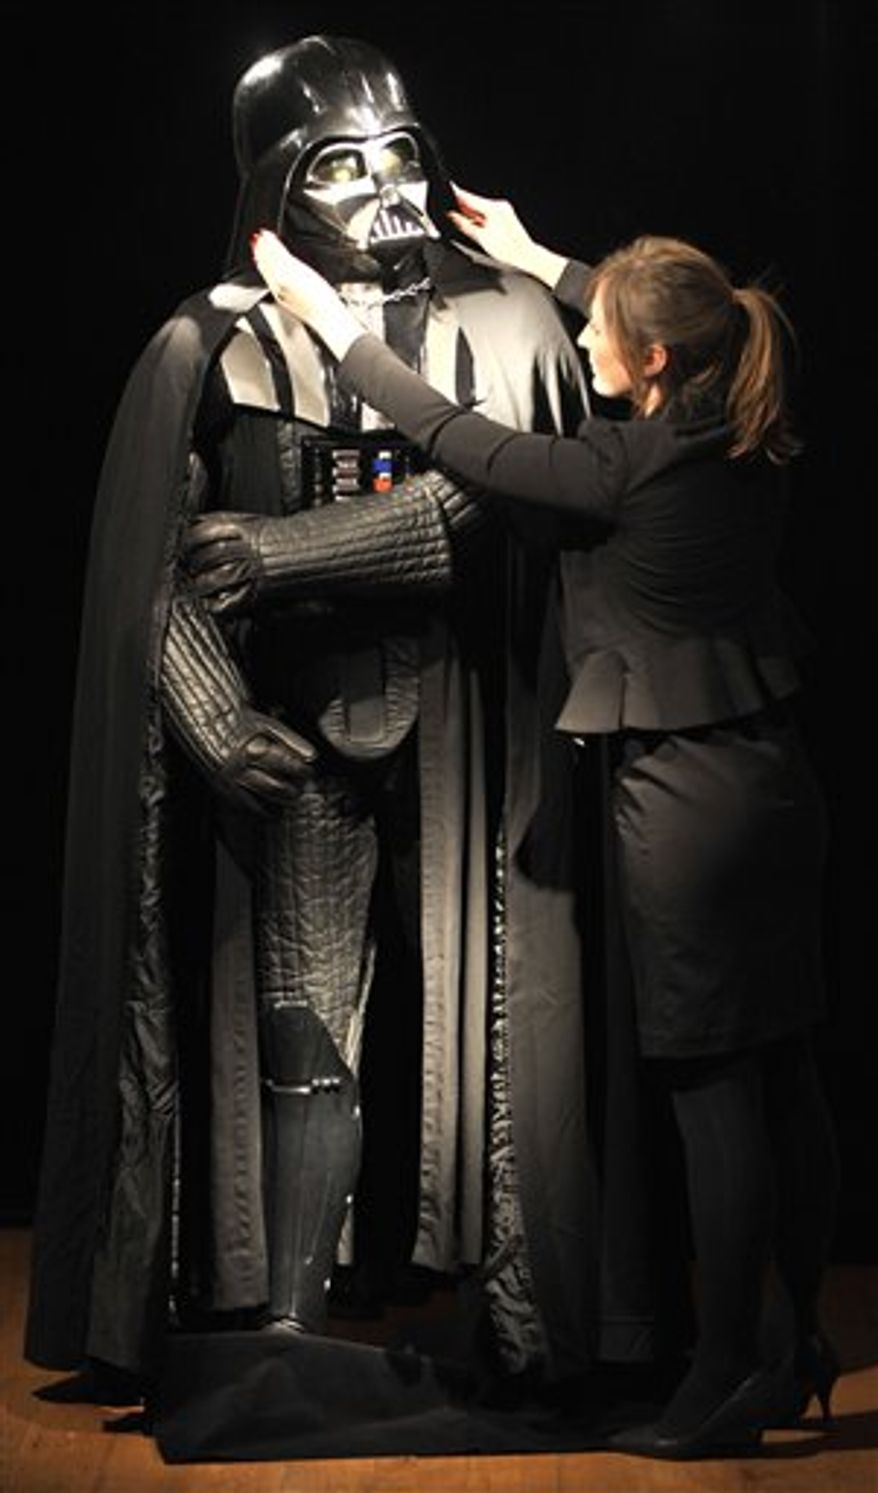 Christie's employee Caitlin Graham poses with a Darth Vader costume in London, Wednesday, Oct. 27, 2010. The helmet, mask, shoulder armour and shin guards of the costume have been produced for the second Star Wars movie 'The Empire Strikes Back', released in 1980. On November 25, 2010 the costume will be offered at Christie's South Kensington and is expected to realise 160,000 GBP to 230,000 GBP.(AP Photo/Lennart Preiss)